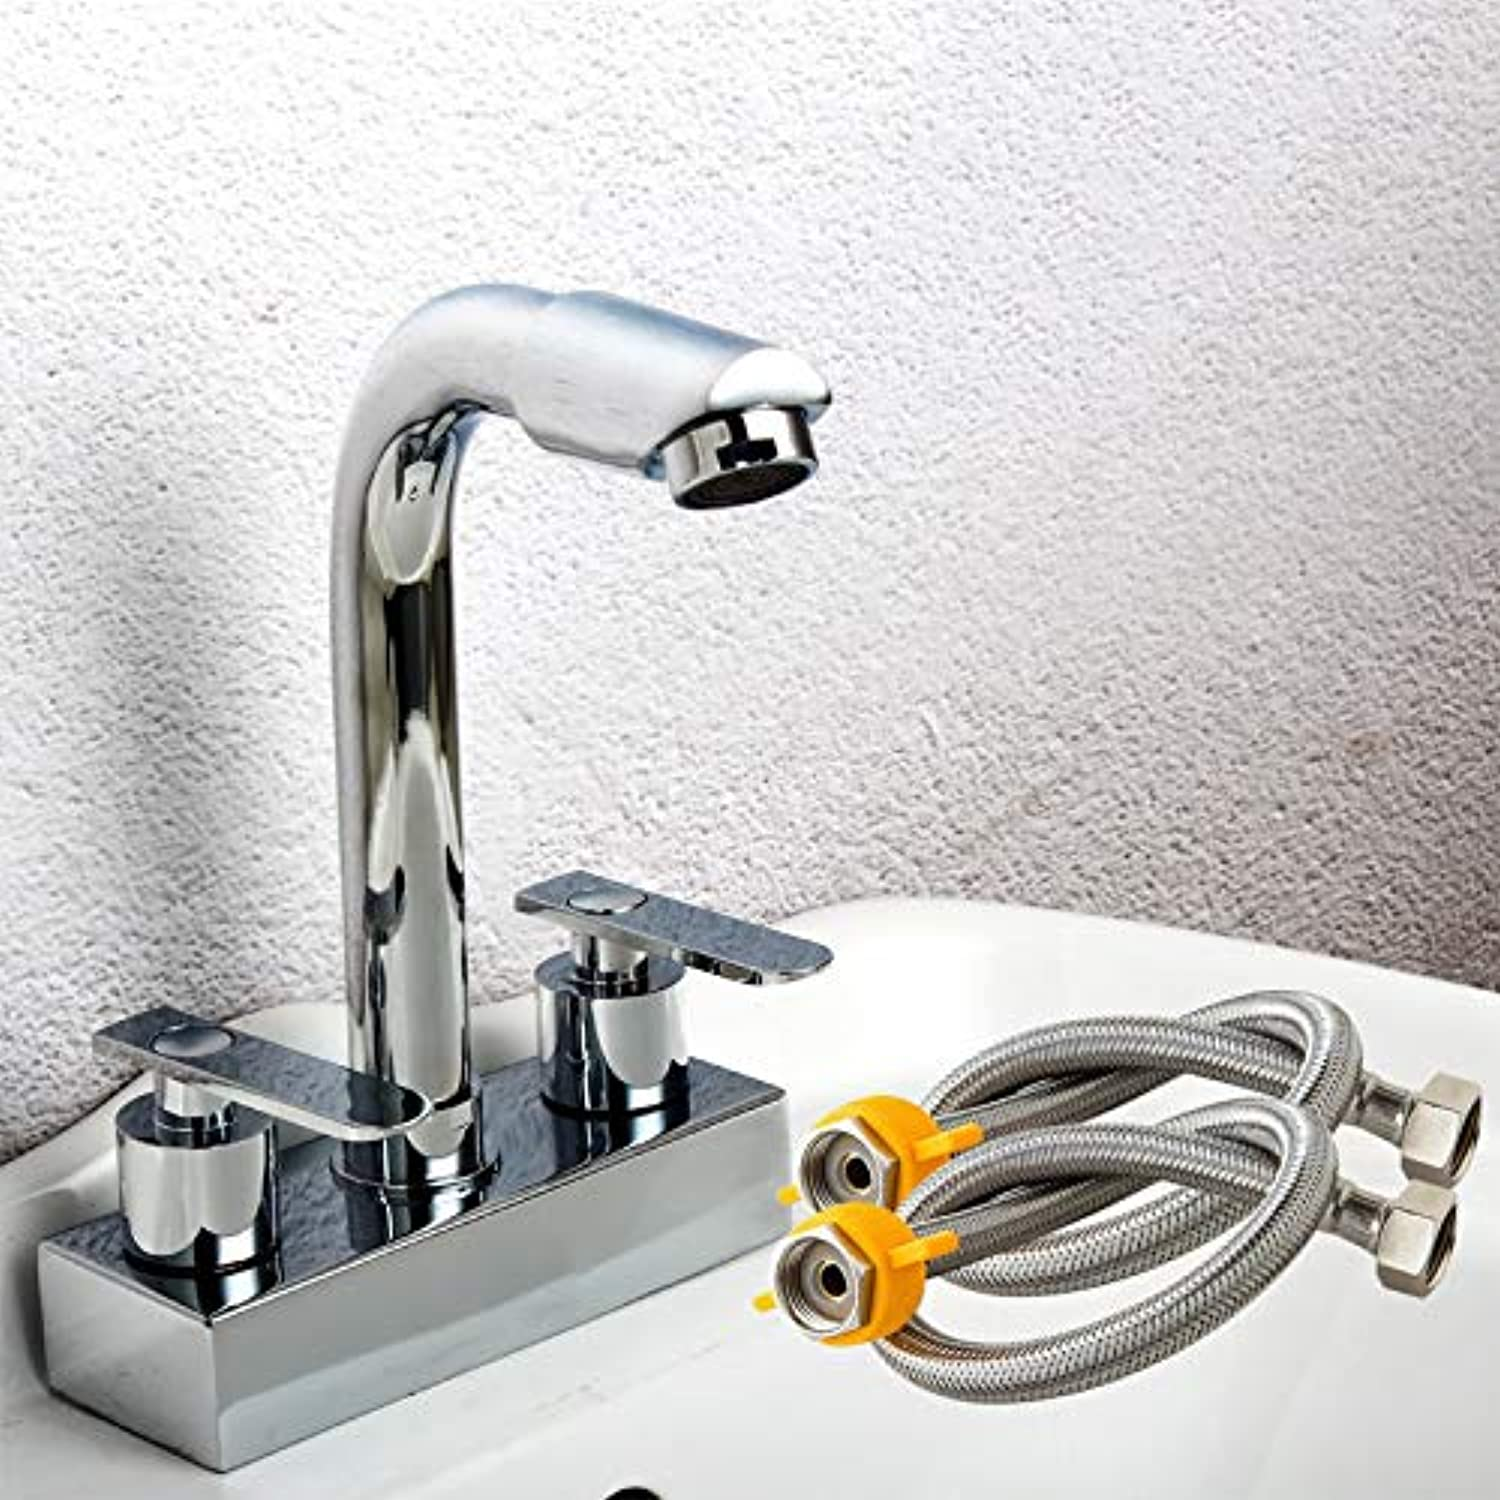 Hlluya Professional Sink Mixer Tap Kitchen Faucet Solid brass double Two holes basin cold water tap,Y